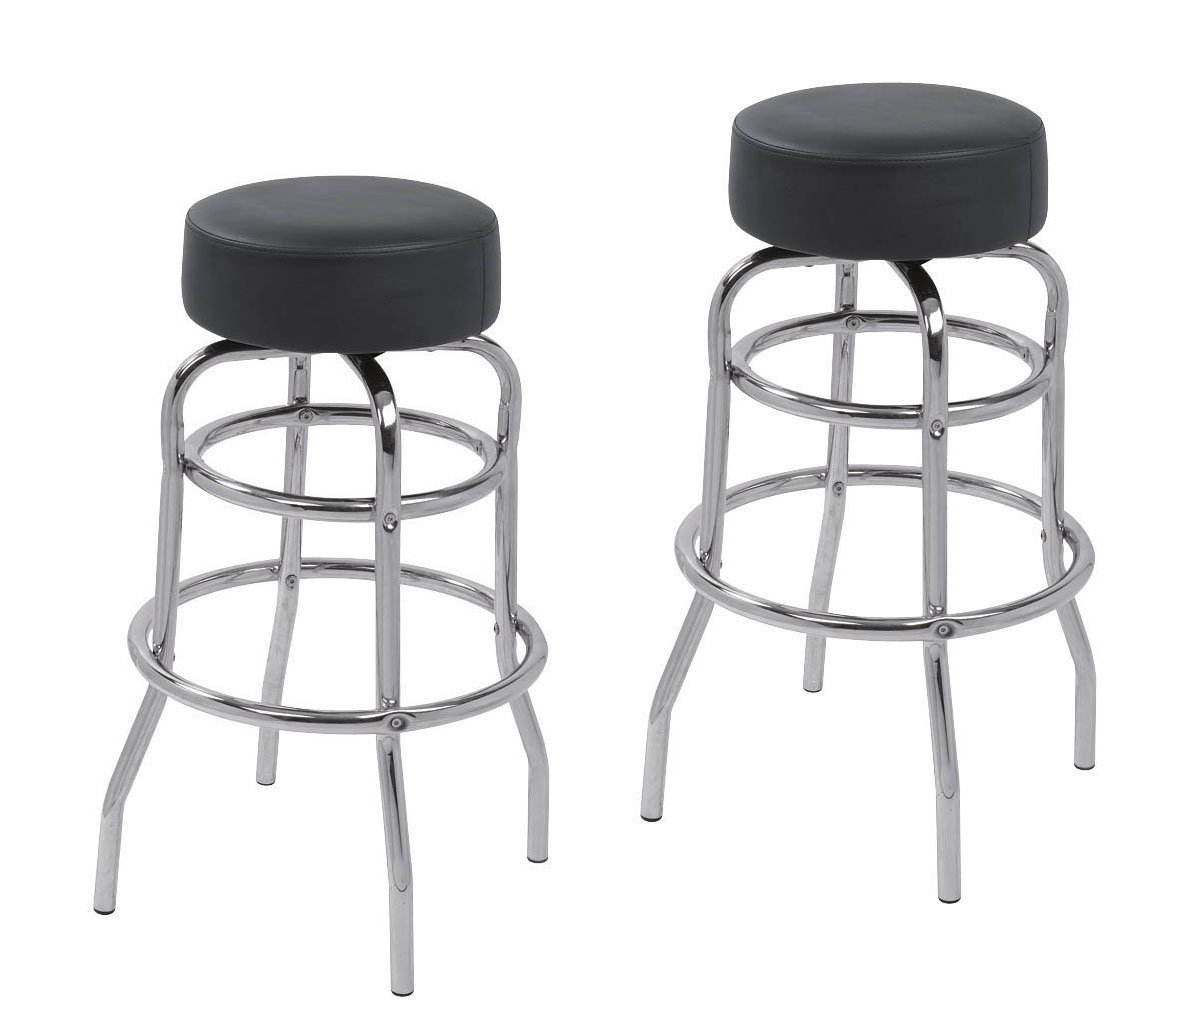 2 x PU Leather Swivel Commercial Grade Bar Stools Dining Chairs 5030 -Pack of 2 Black